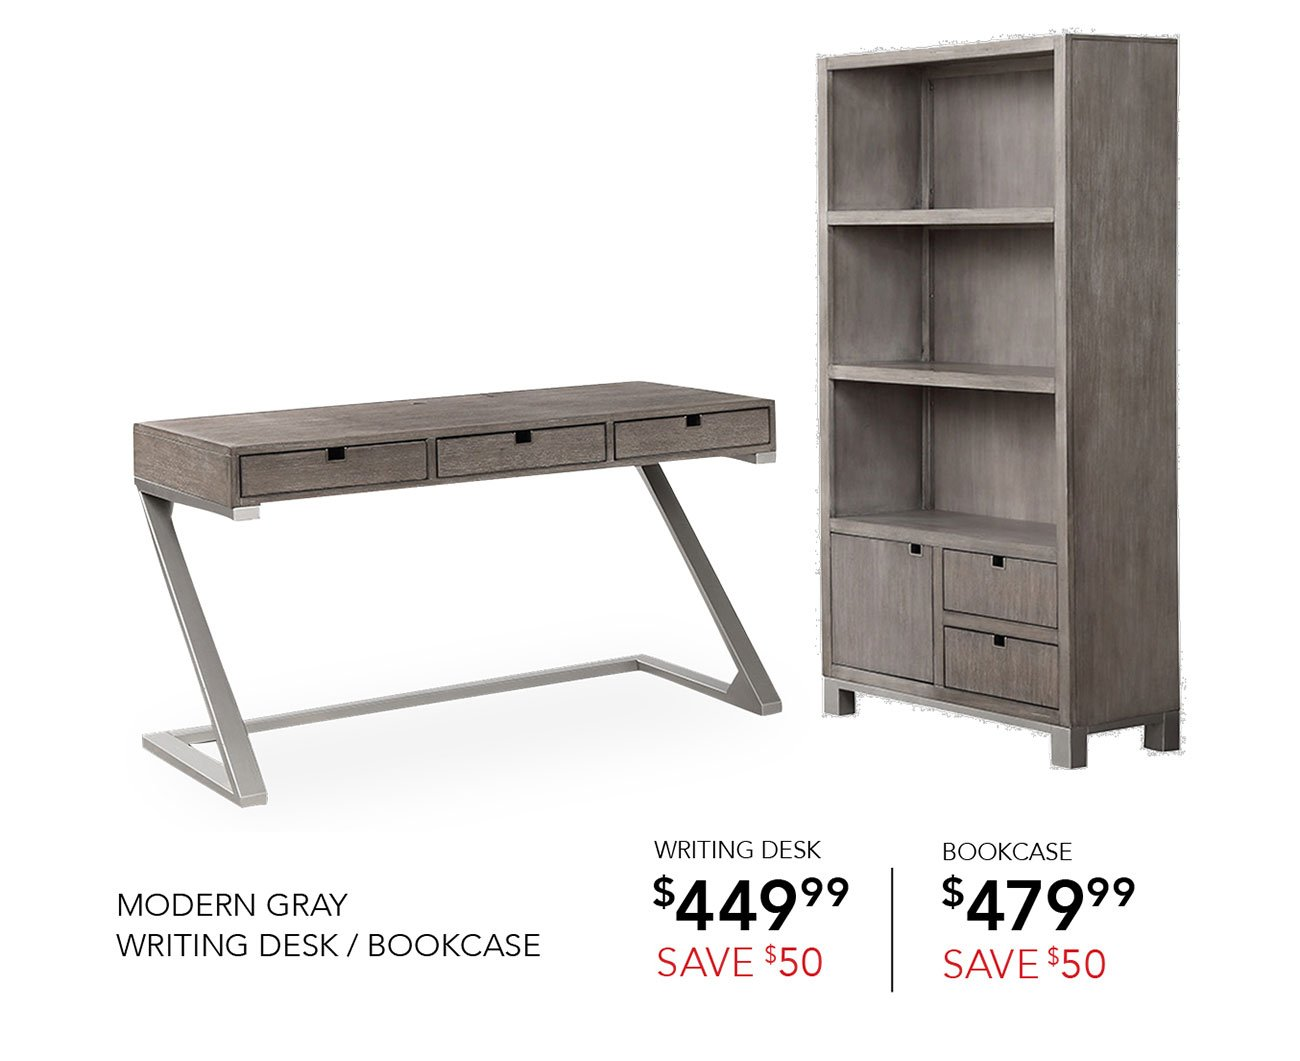 Modern-gray-book-case-writting-desk